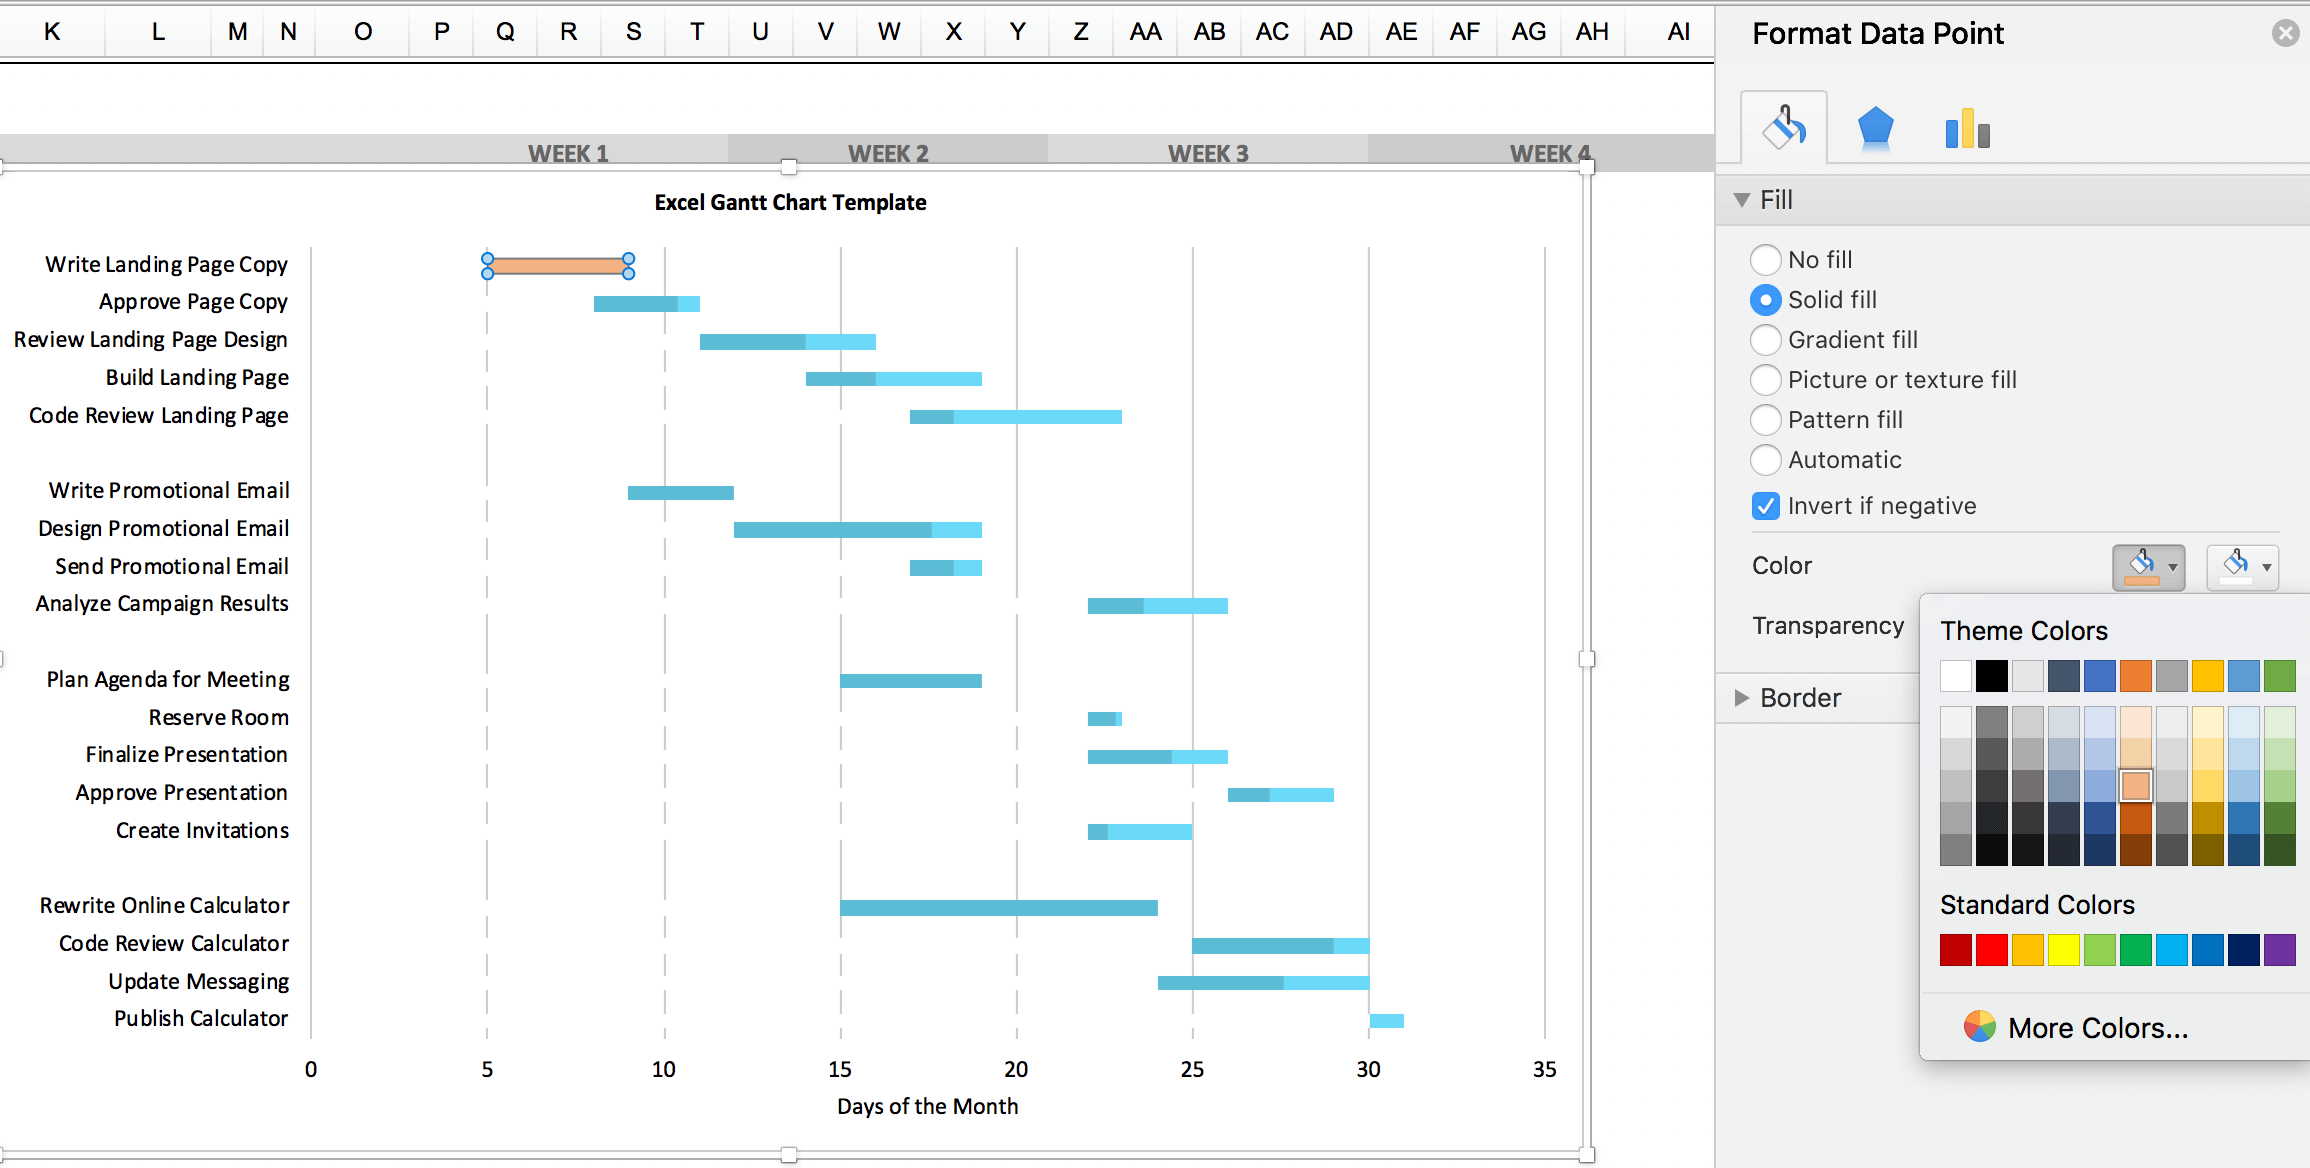 Free Gantt Chart Excel Template: Download Now | Teamgantt with Simple Gantt Chart Template